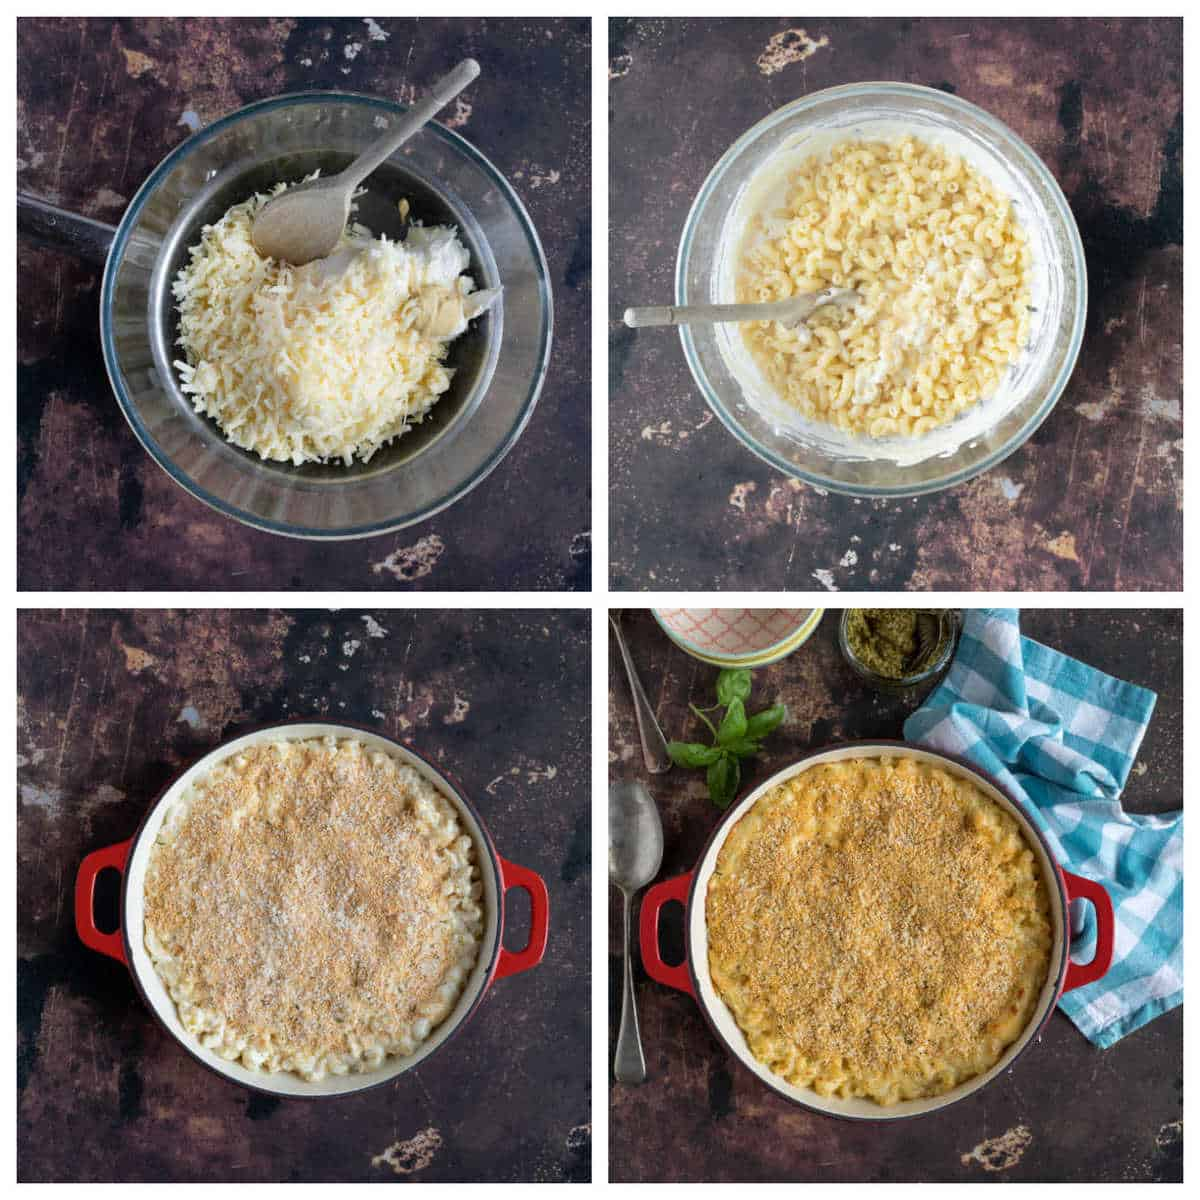 Step by step photo instructions for making easy cheesy pasta.